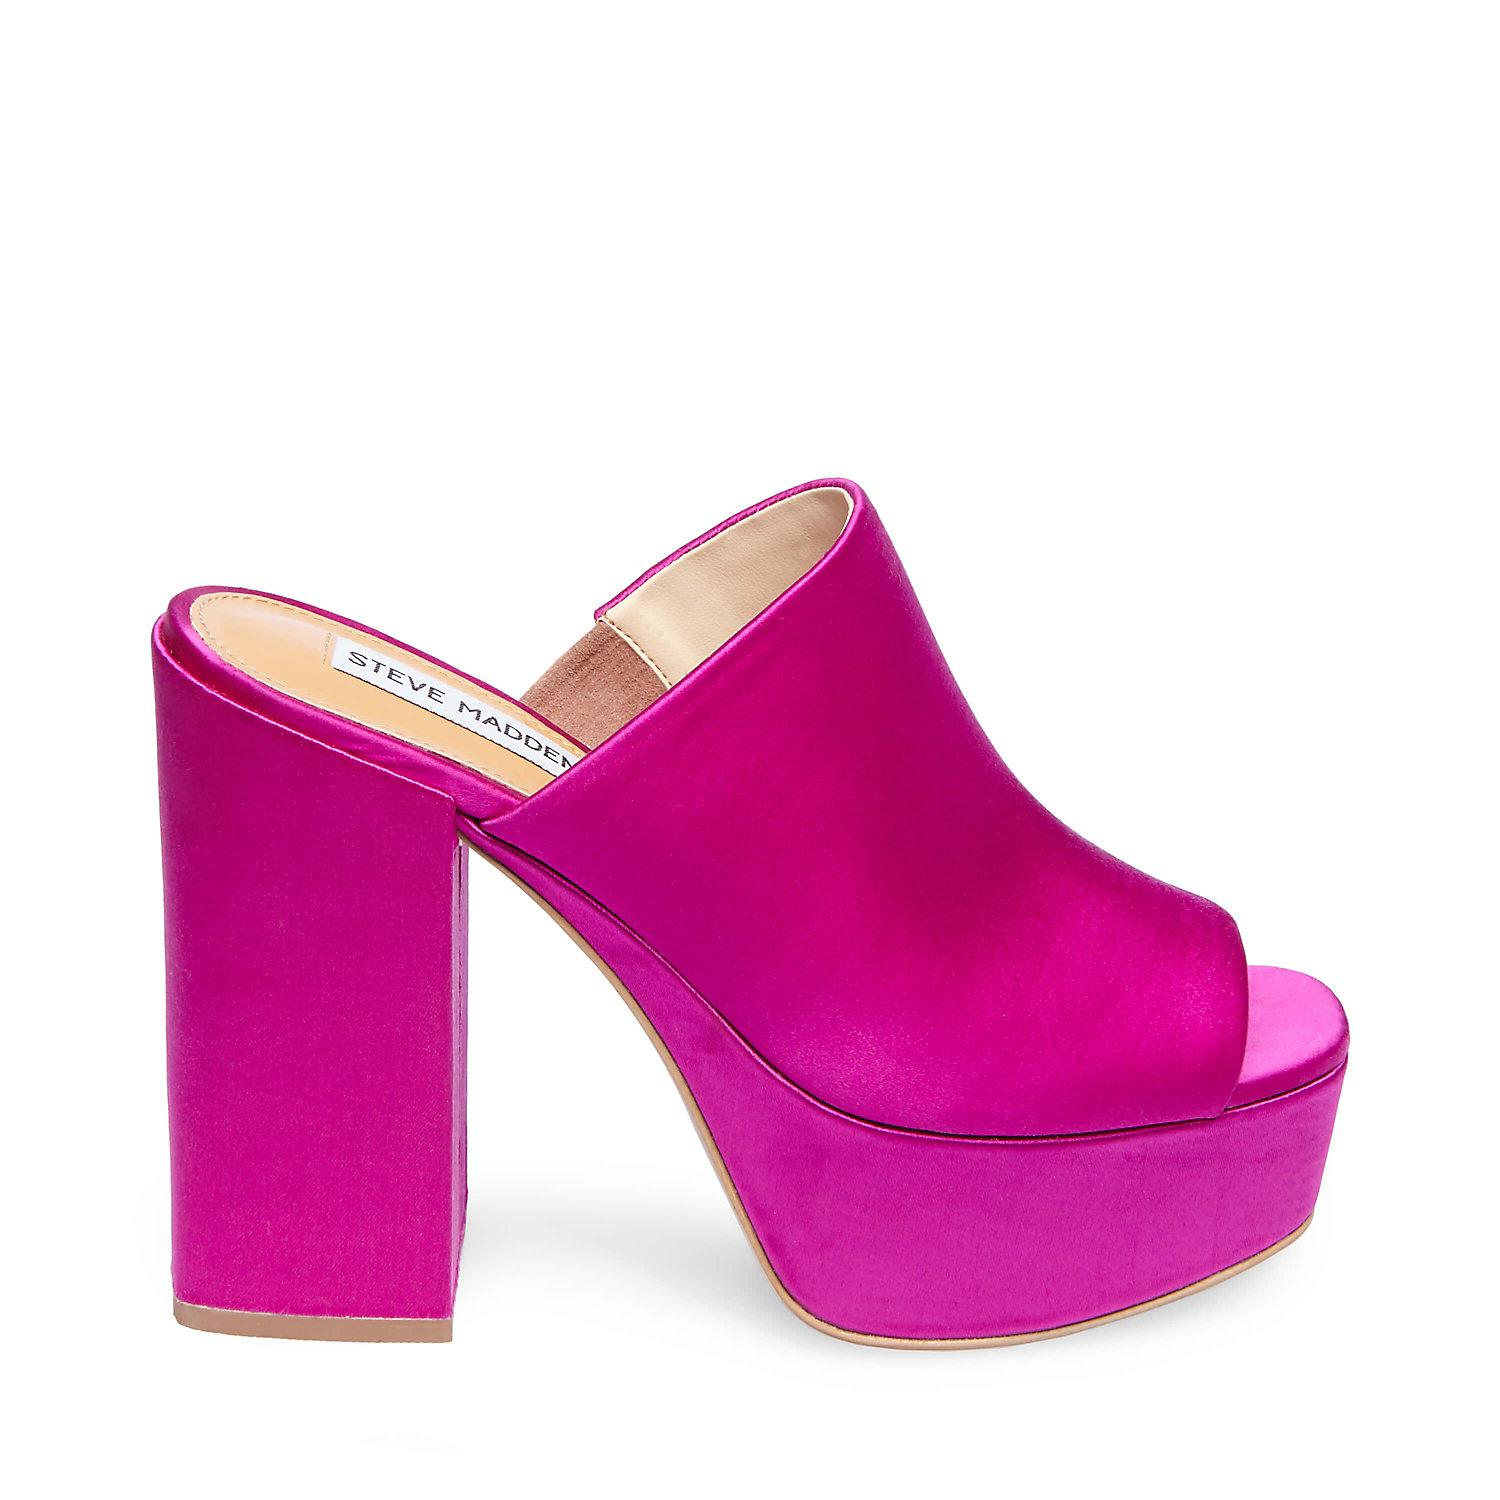 a2317596c97 Lyst - Steve Madden Cassy in Pink